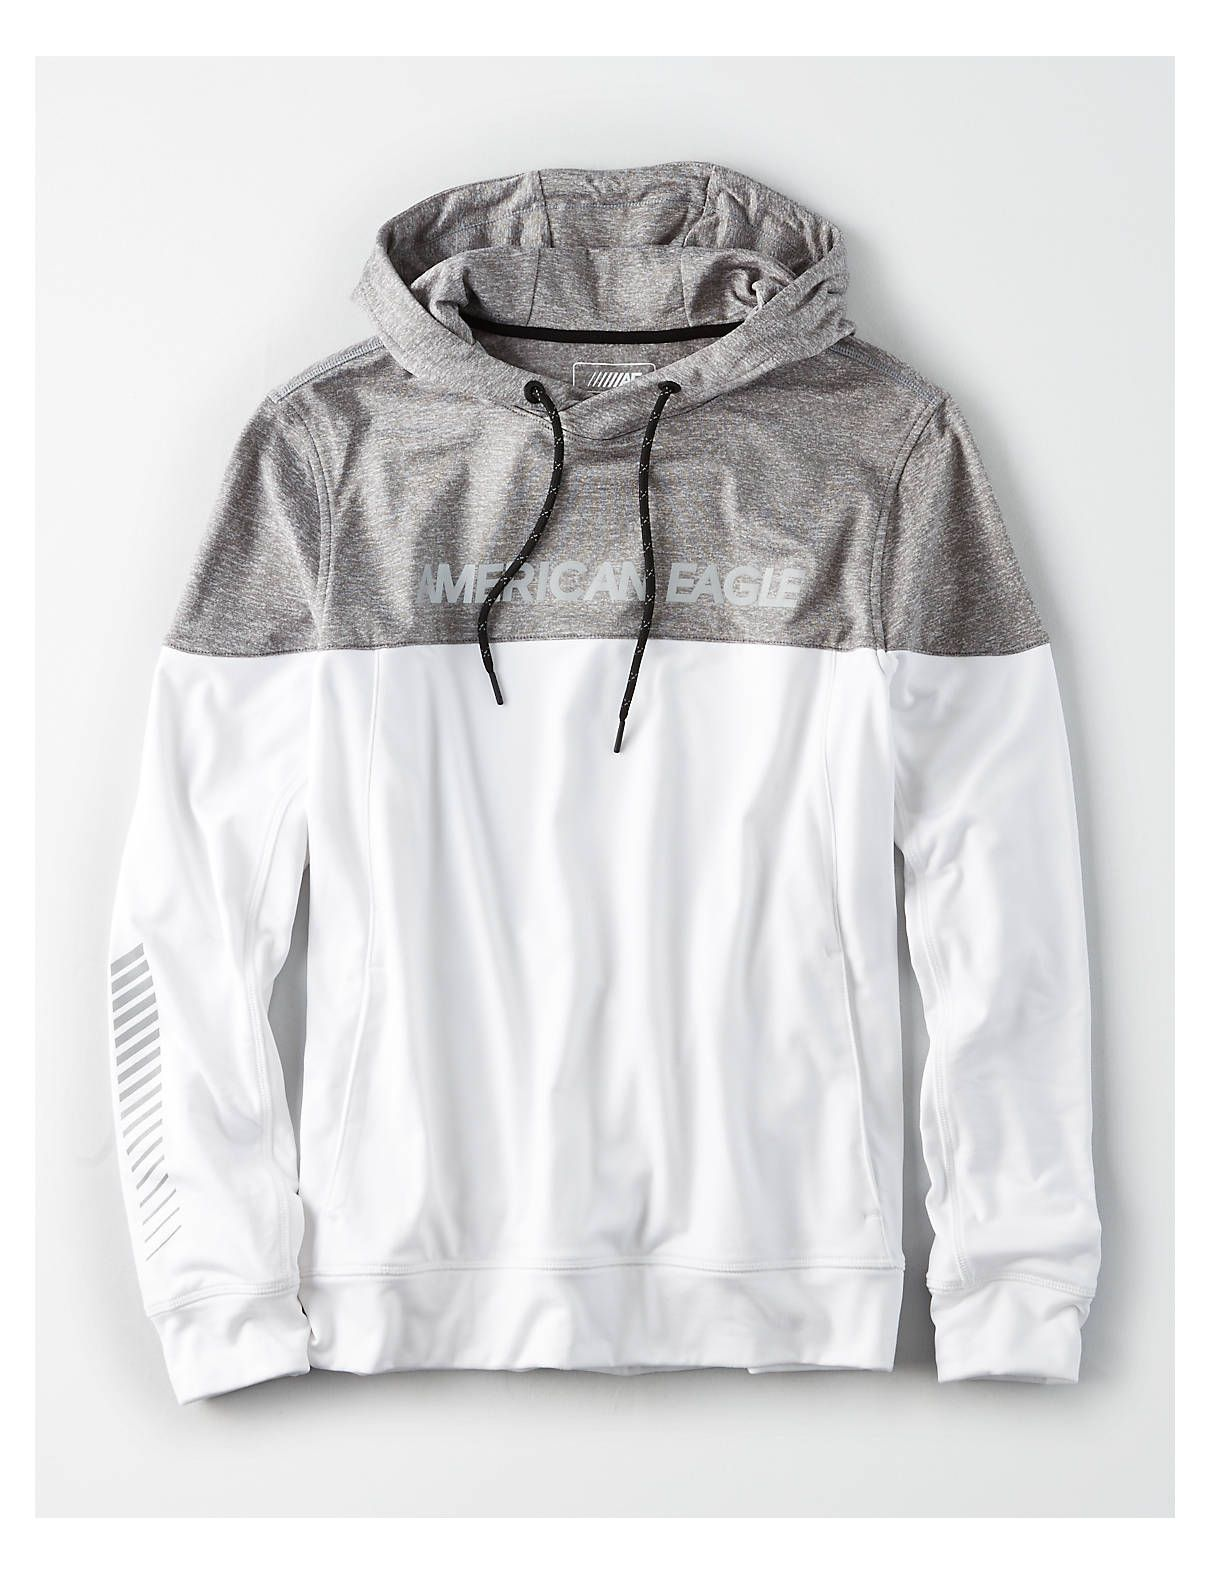 Ae Active Colorblock Hoodie White American Eagle Outfitters Hoodies Mens Outfitters Clothes [ 1575 x 1211 Pixel ]